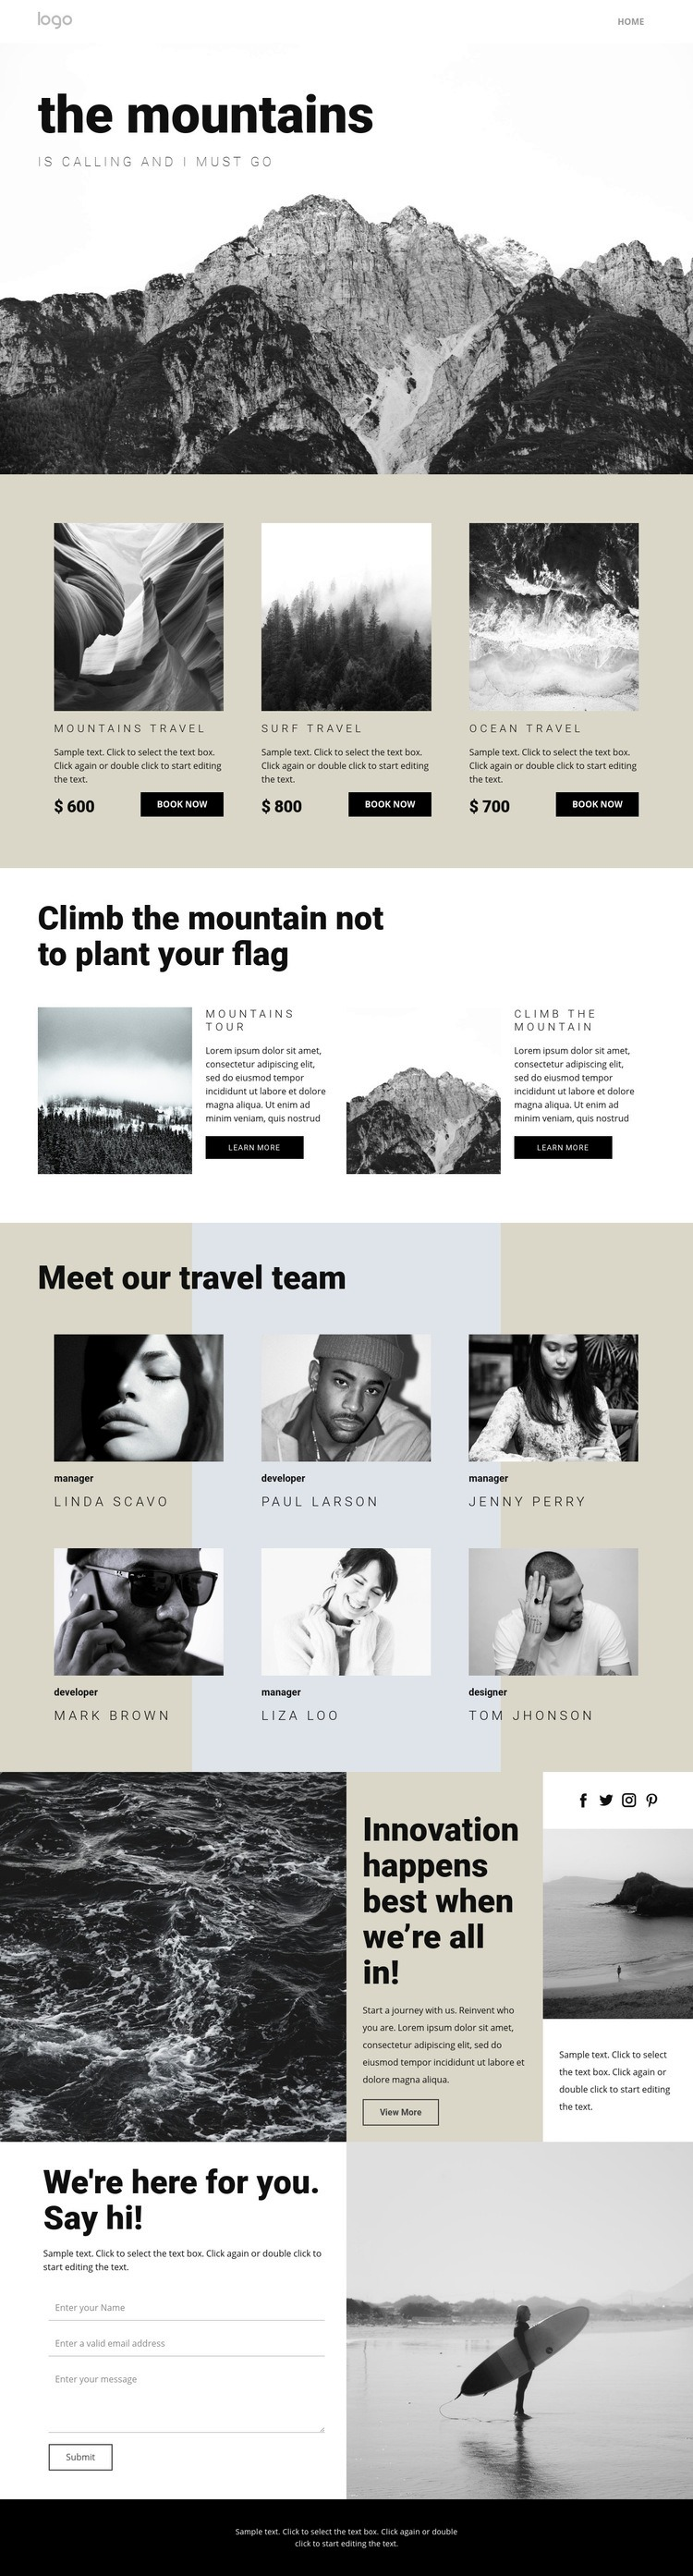 Agency for people who travel Html Code Example